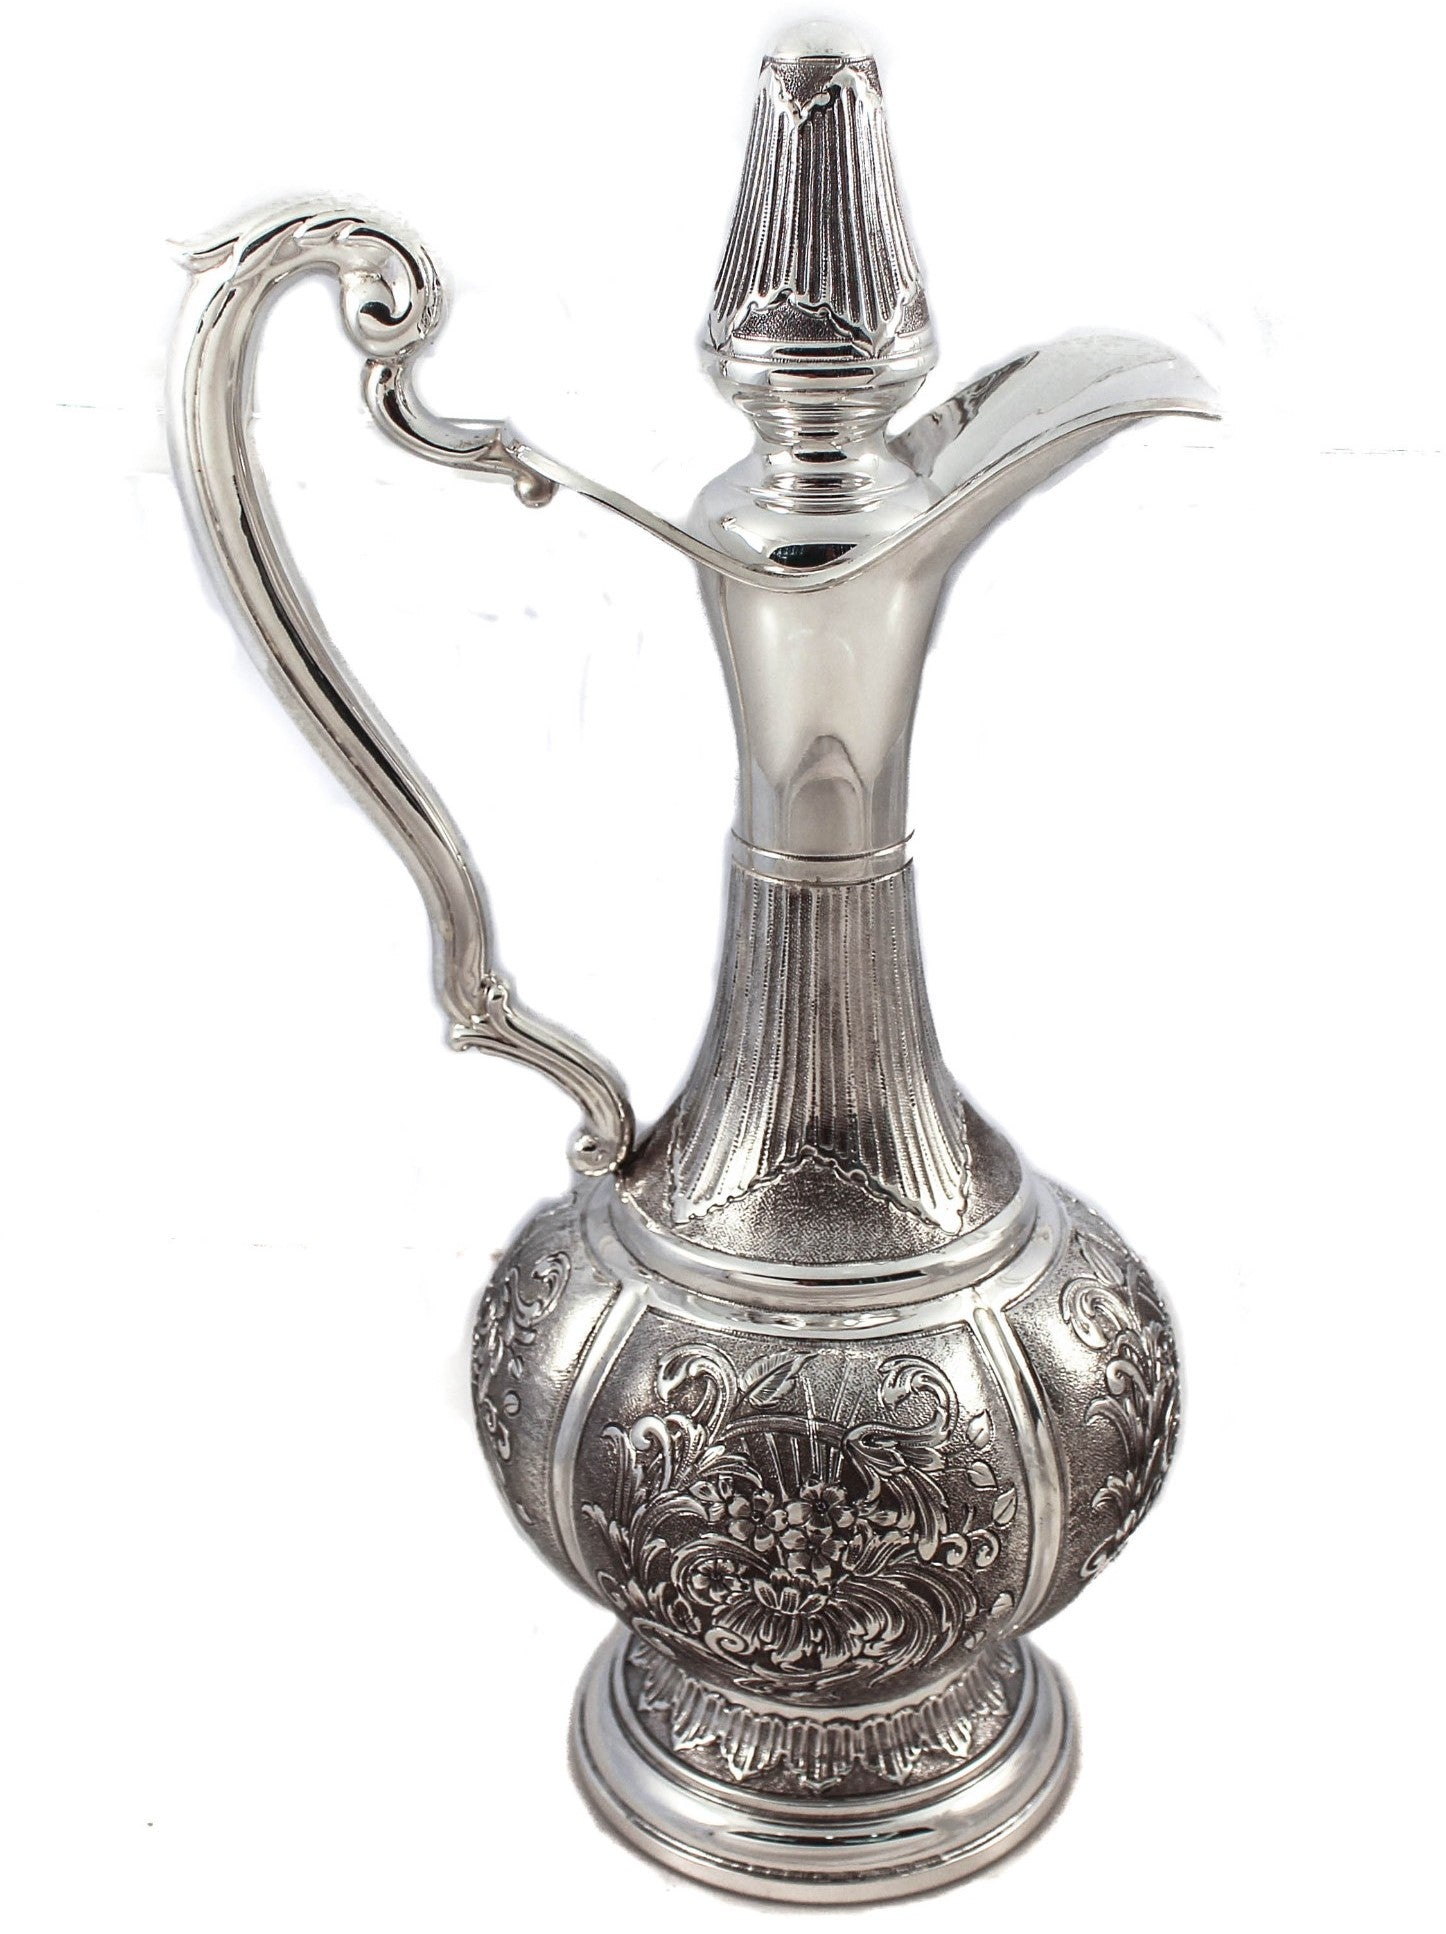 FINE ITALIAN 925 STERLING SILVER FINE CHASED DECANTER WITH FLOWER PATTERN